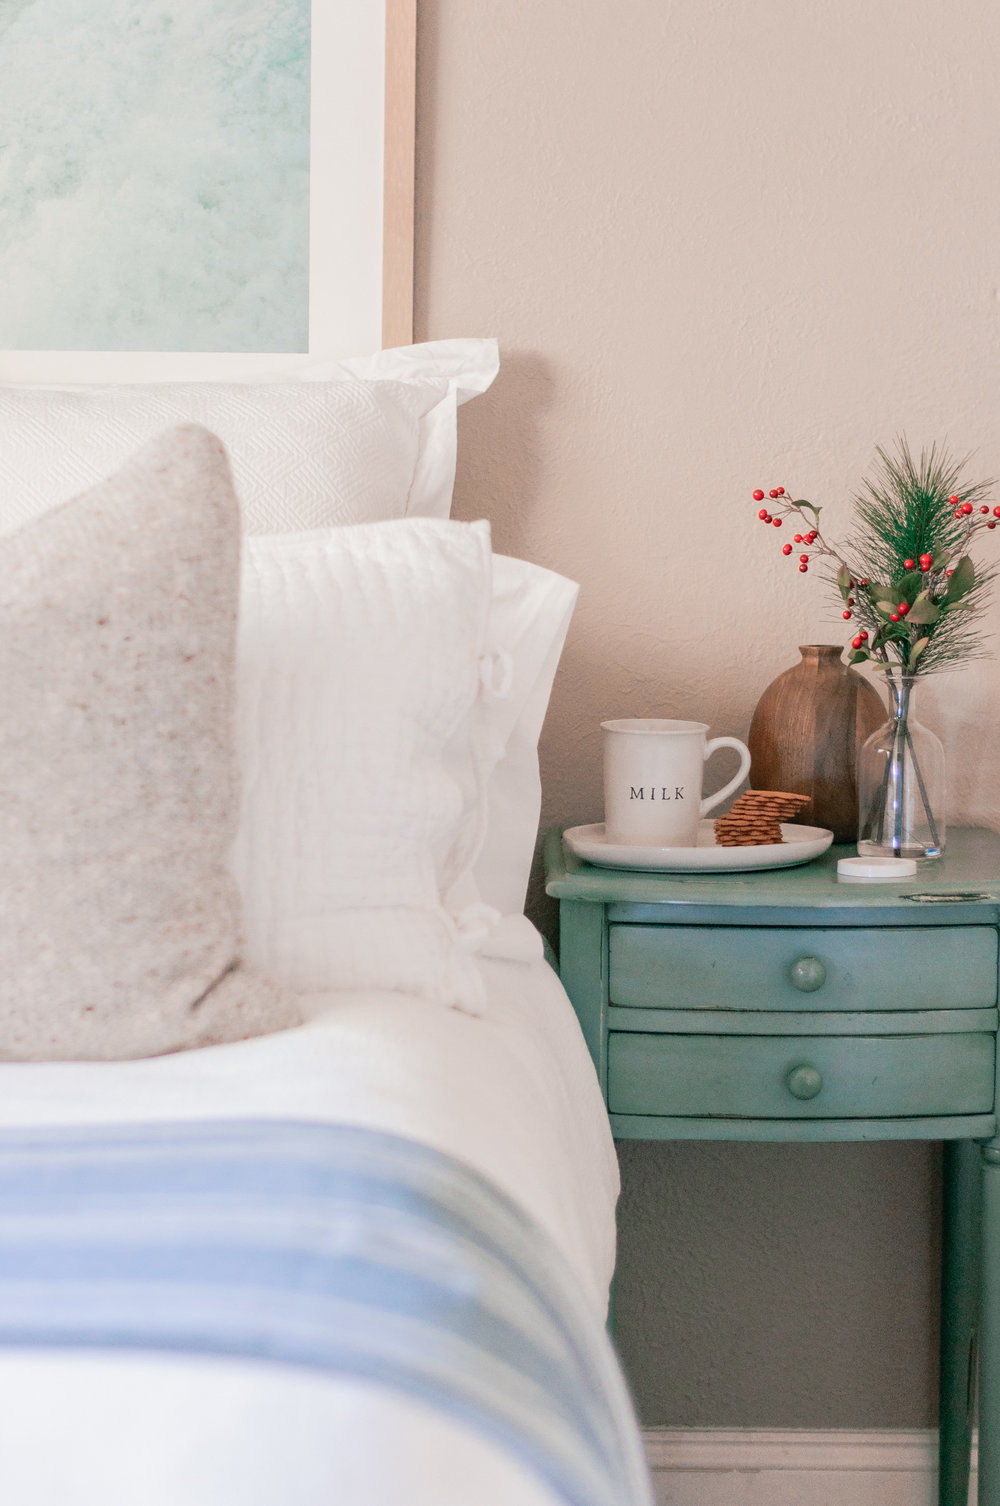 How to Decorate Your Guest Bedroom On a Budget